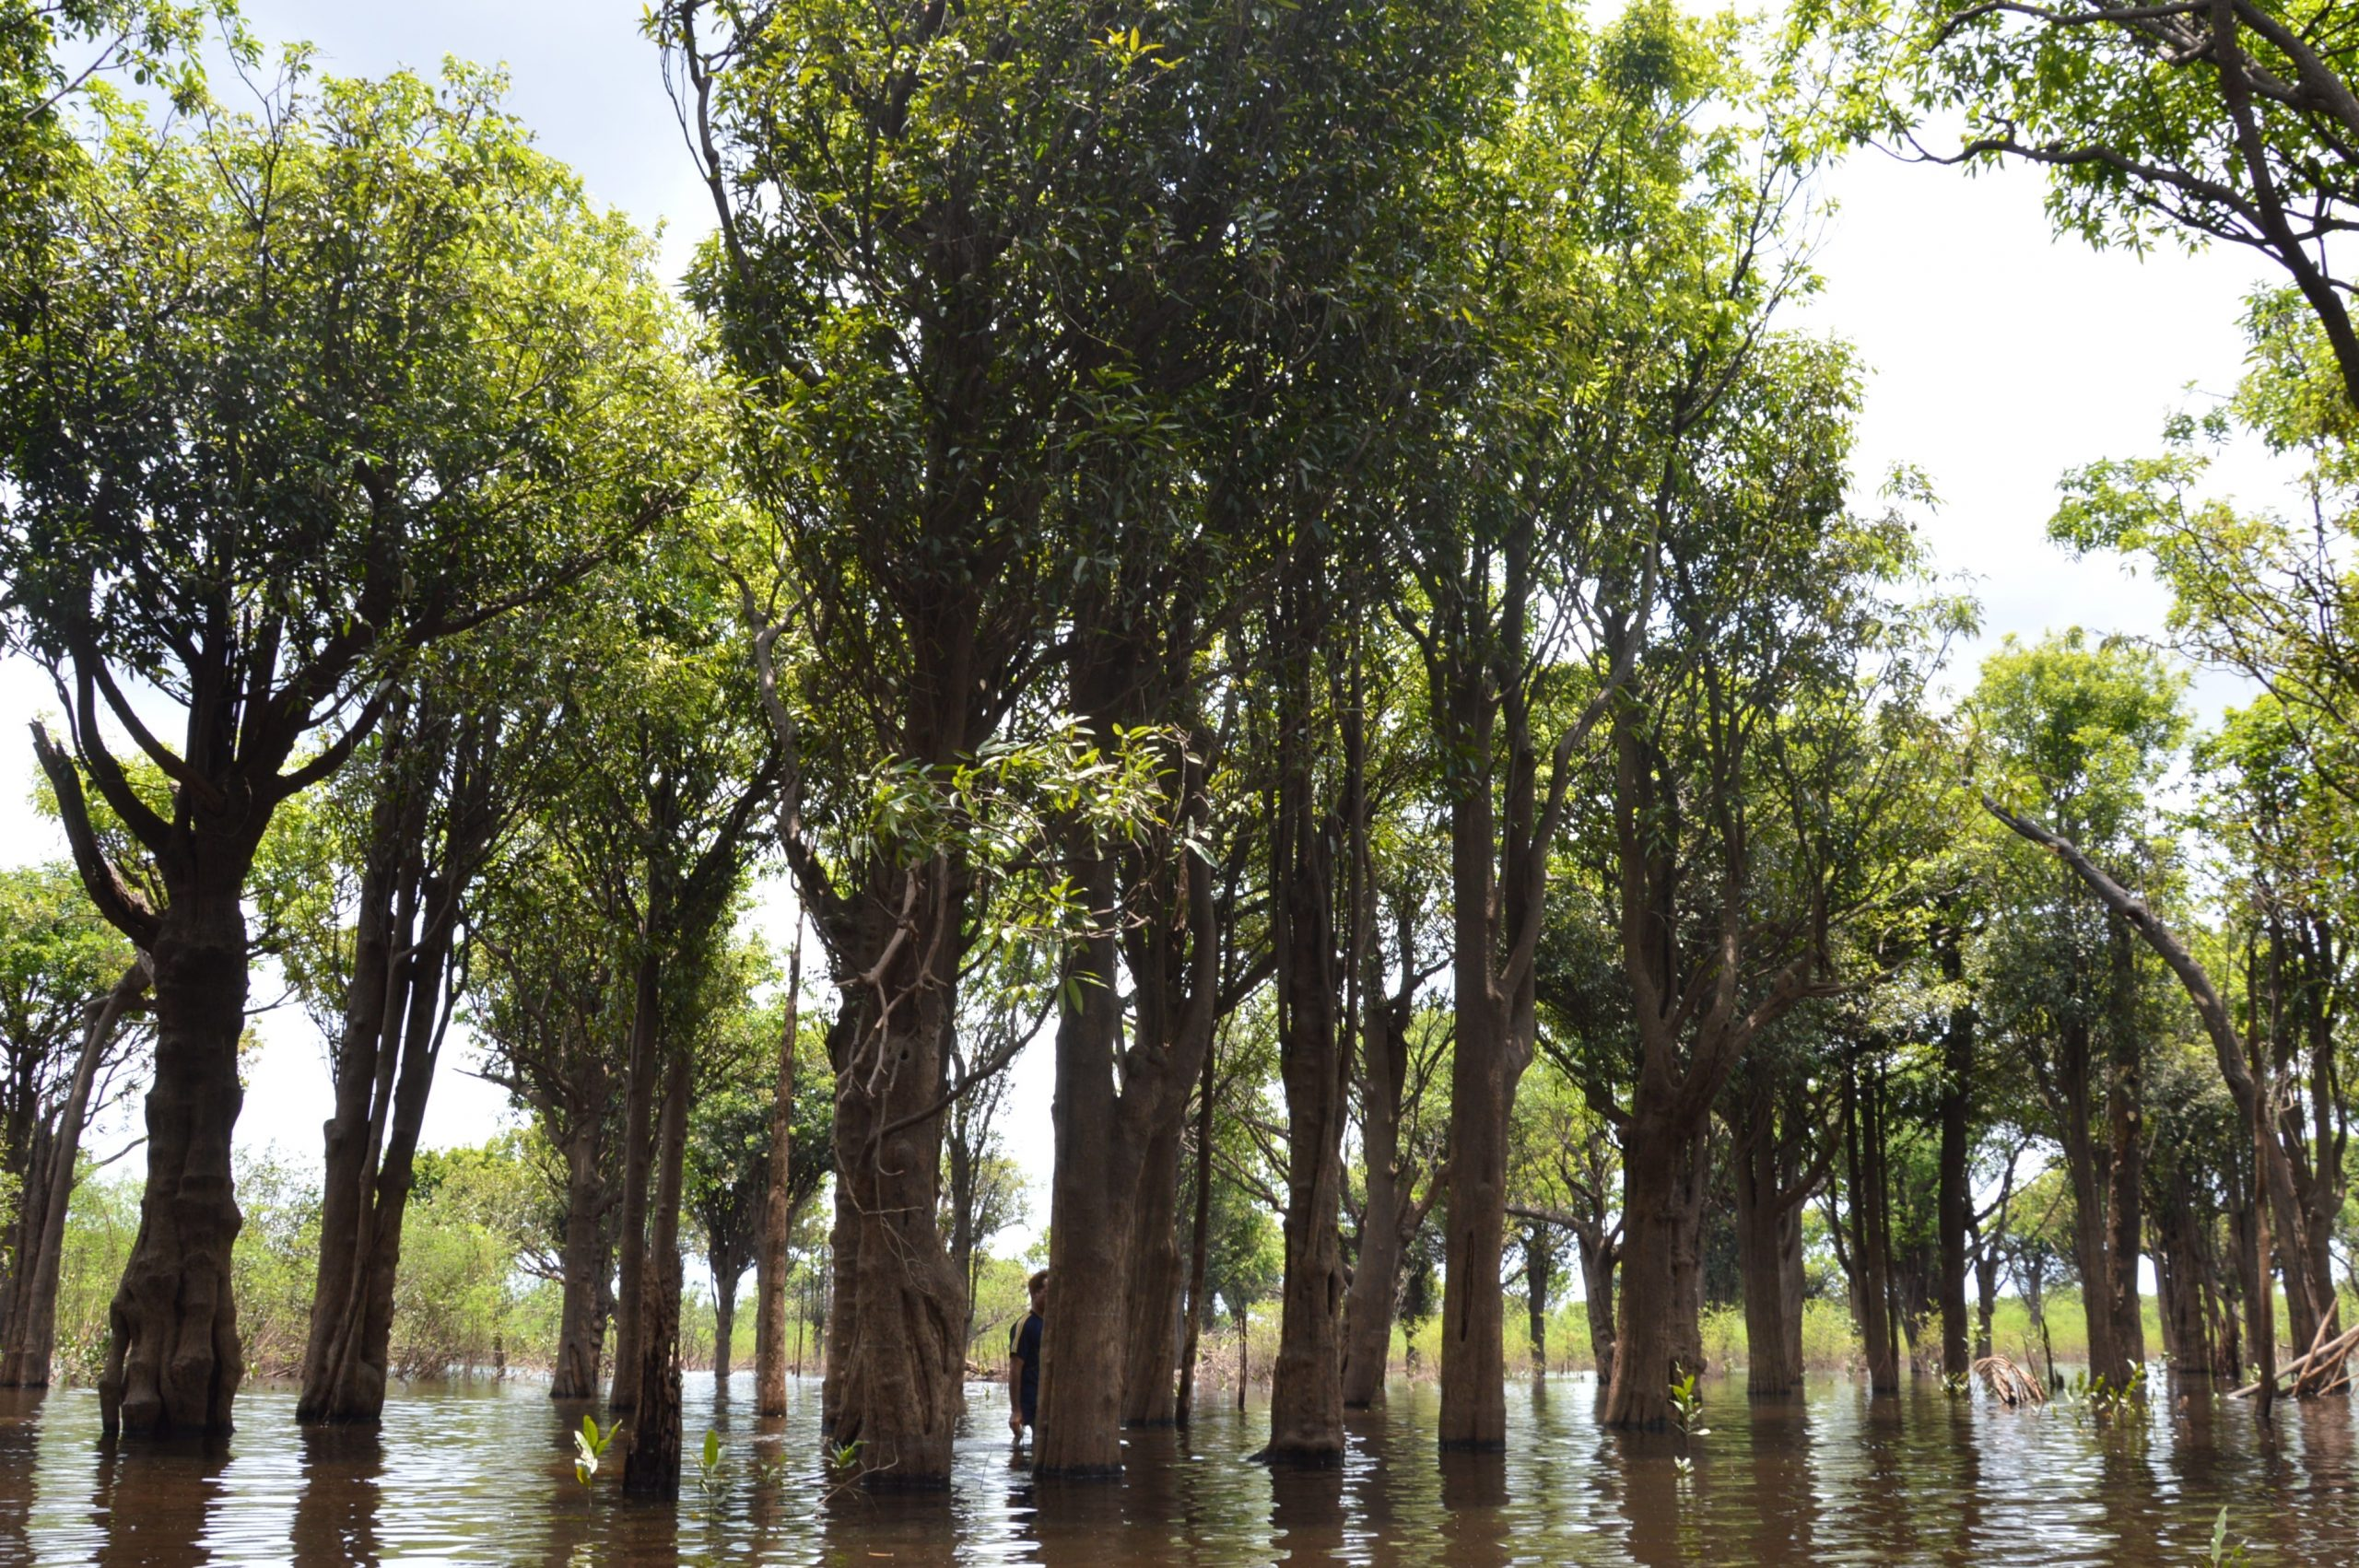 Healthy floodplain trees of the igapó forest are submerged in the shallow water of the Jaú River.